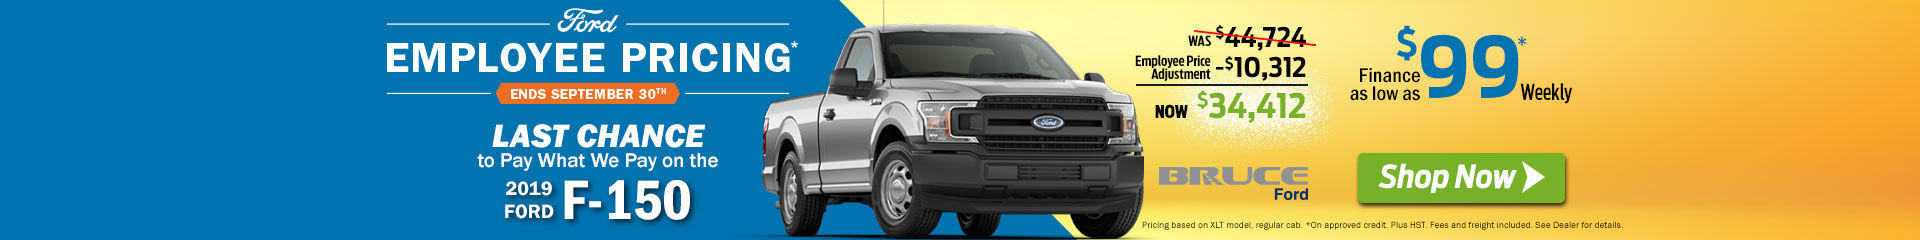 2019-09 Employee Pricing F-150